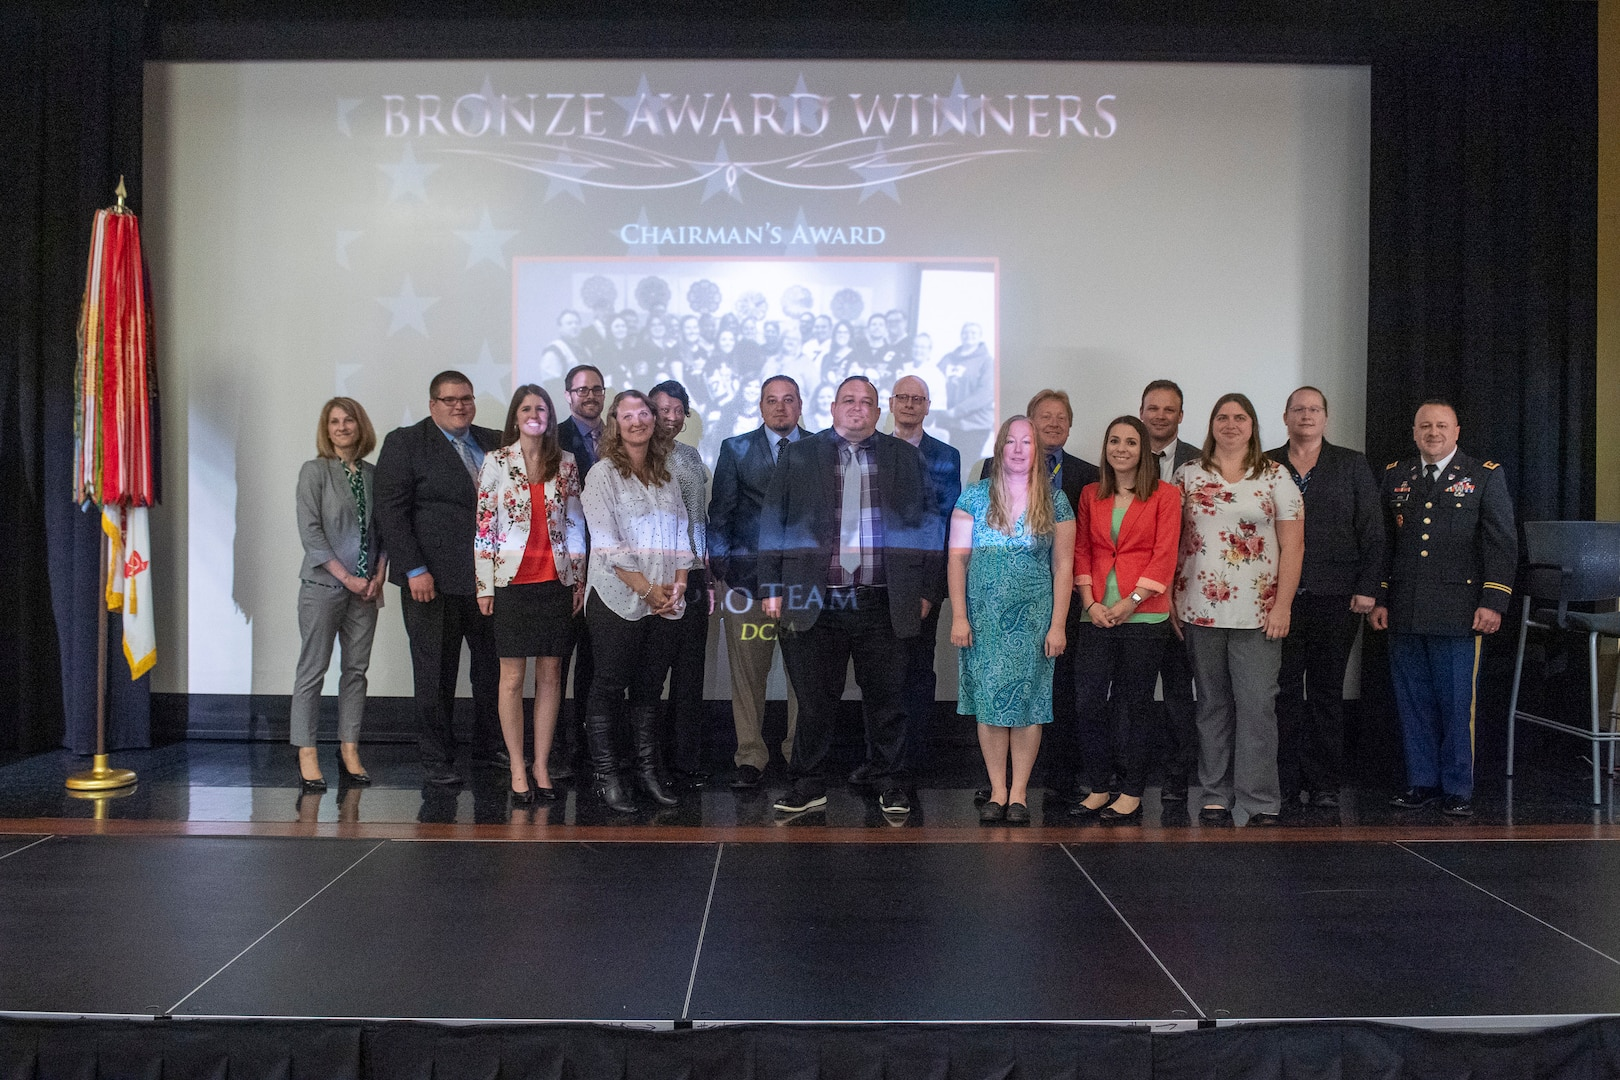 group of people in standing for award ceremony